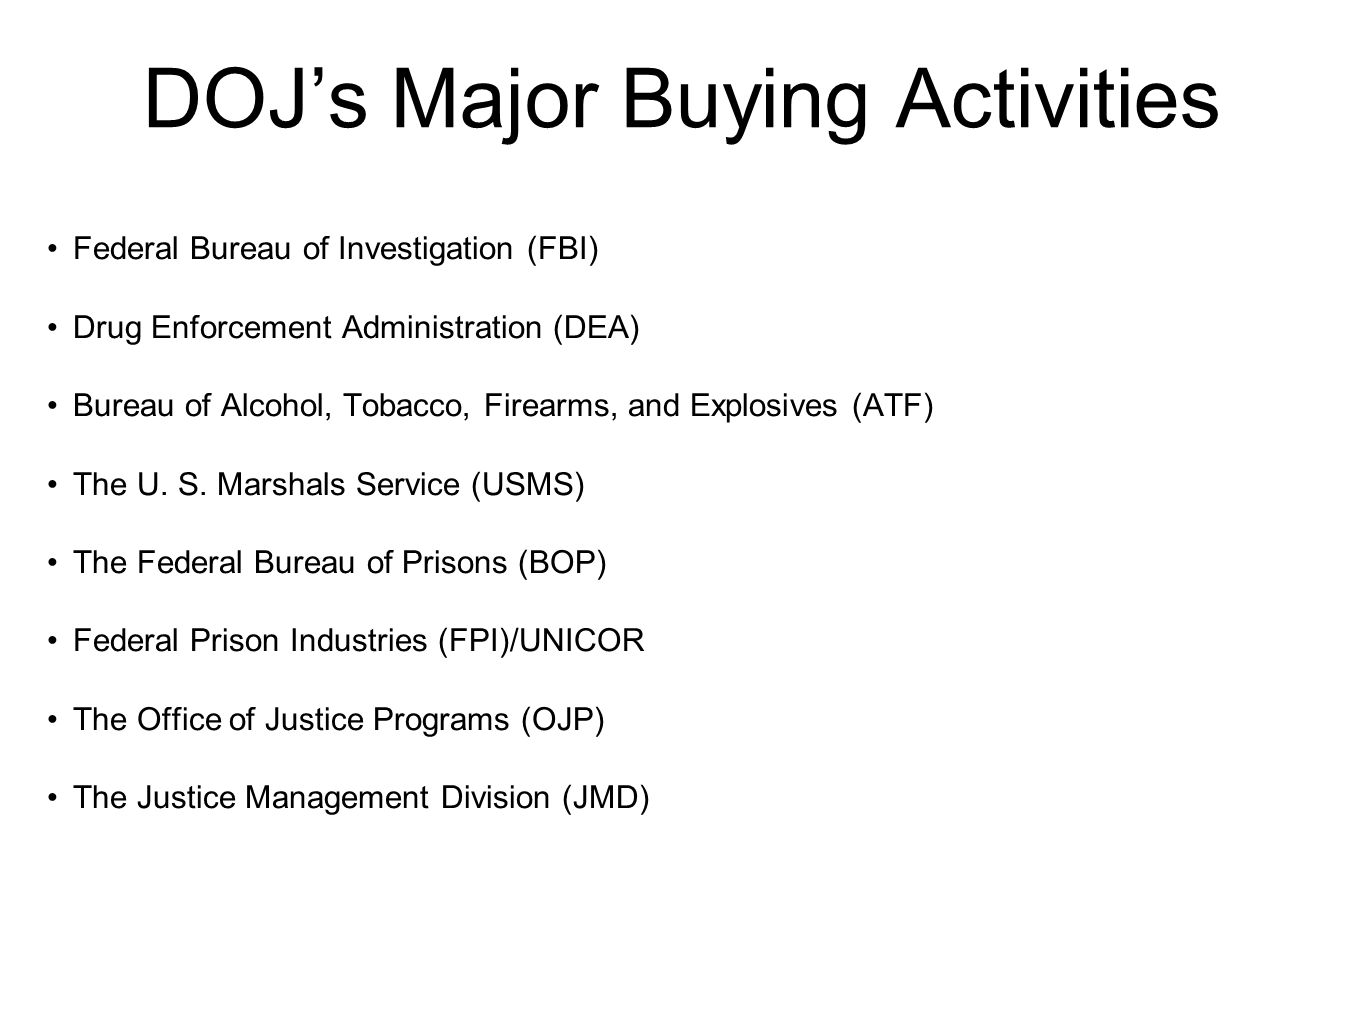 DOJ's Major Buying Activities Federal Bureau of Investigation (FBI) Drug Enforcement Administration (DEA) Bureau of Alcohol, Tobacco, Firearms, and Explosives (ATF) The U.